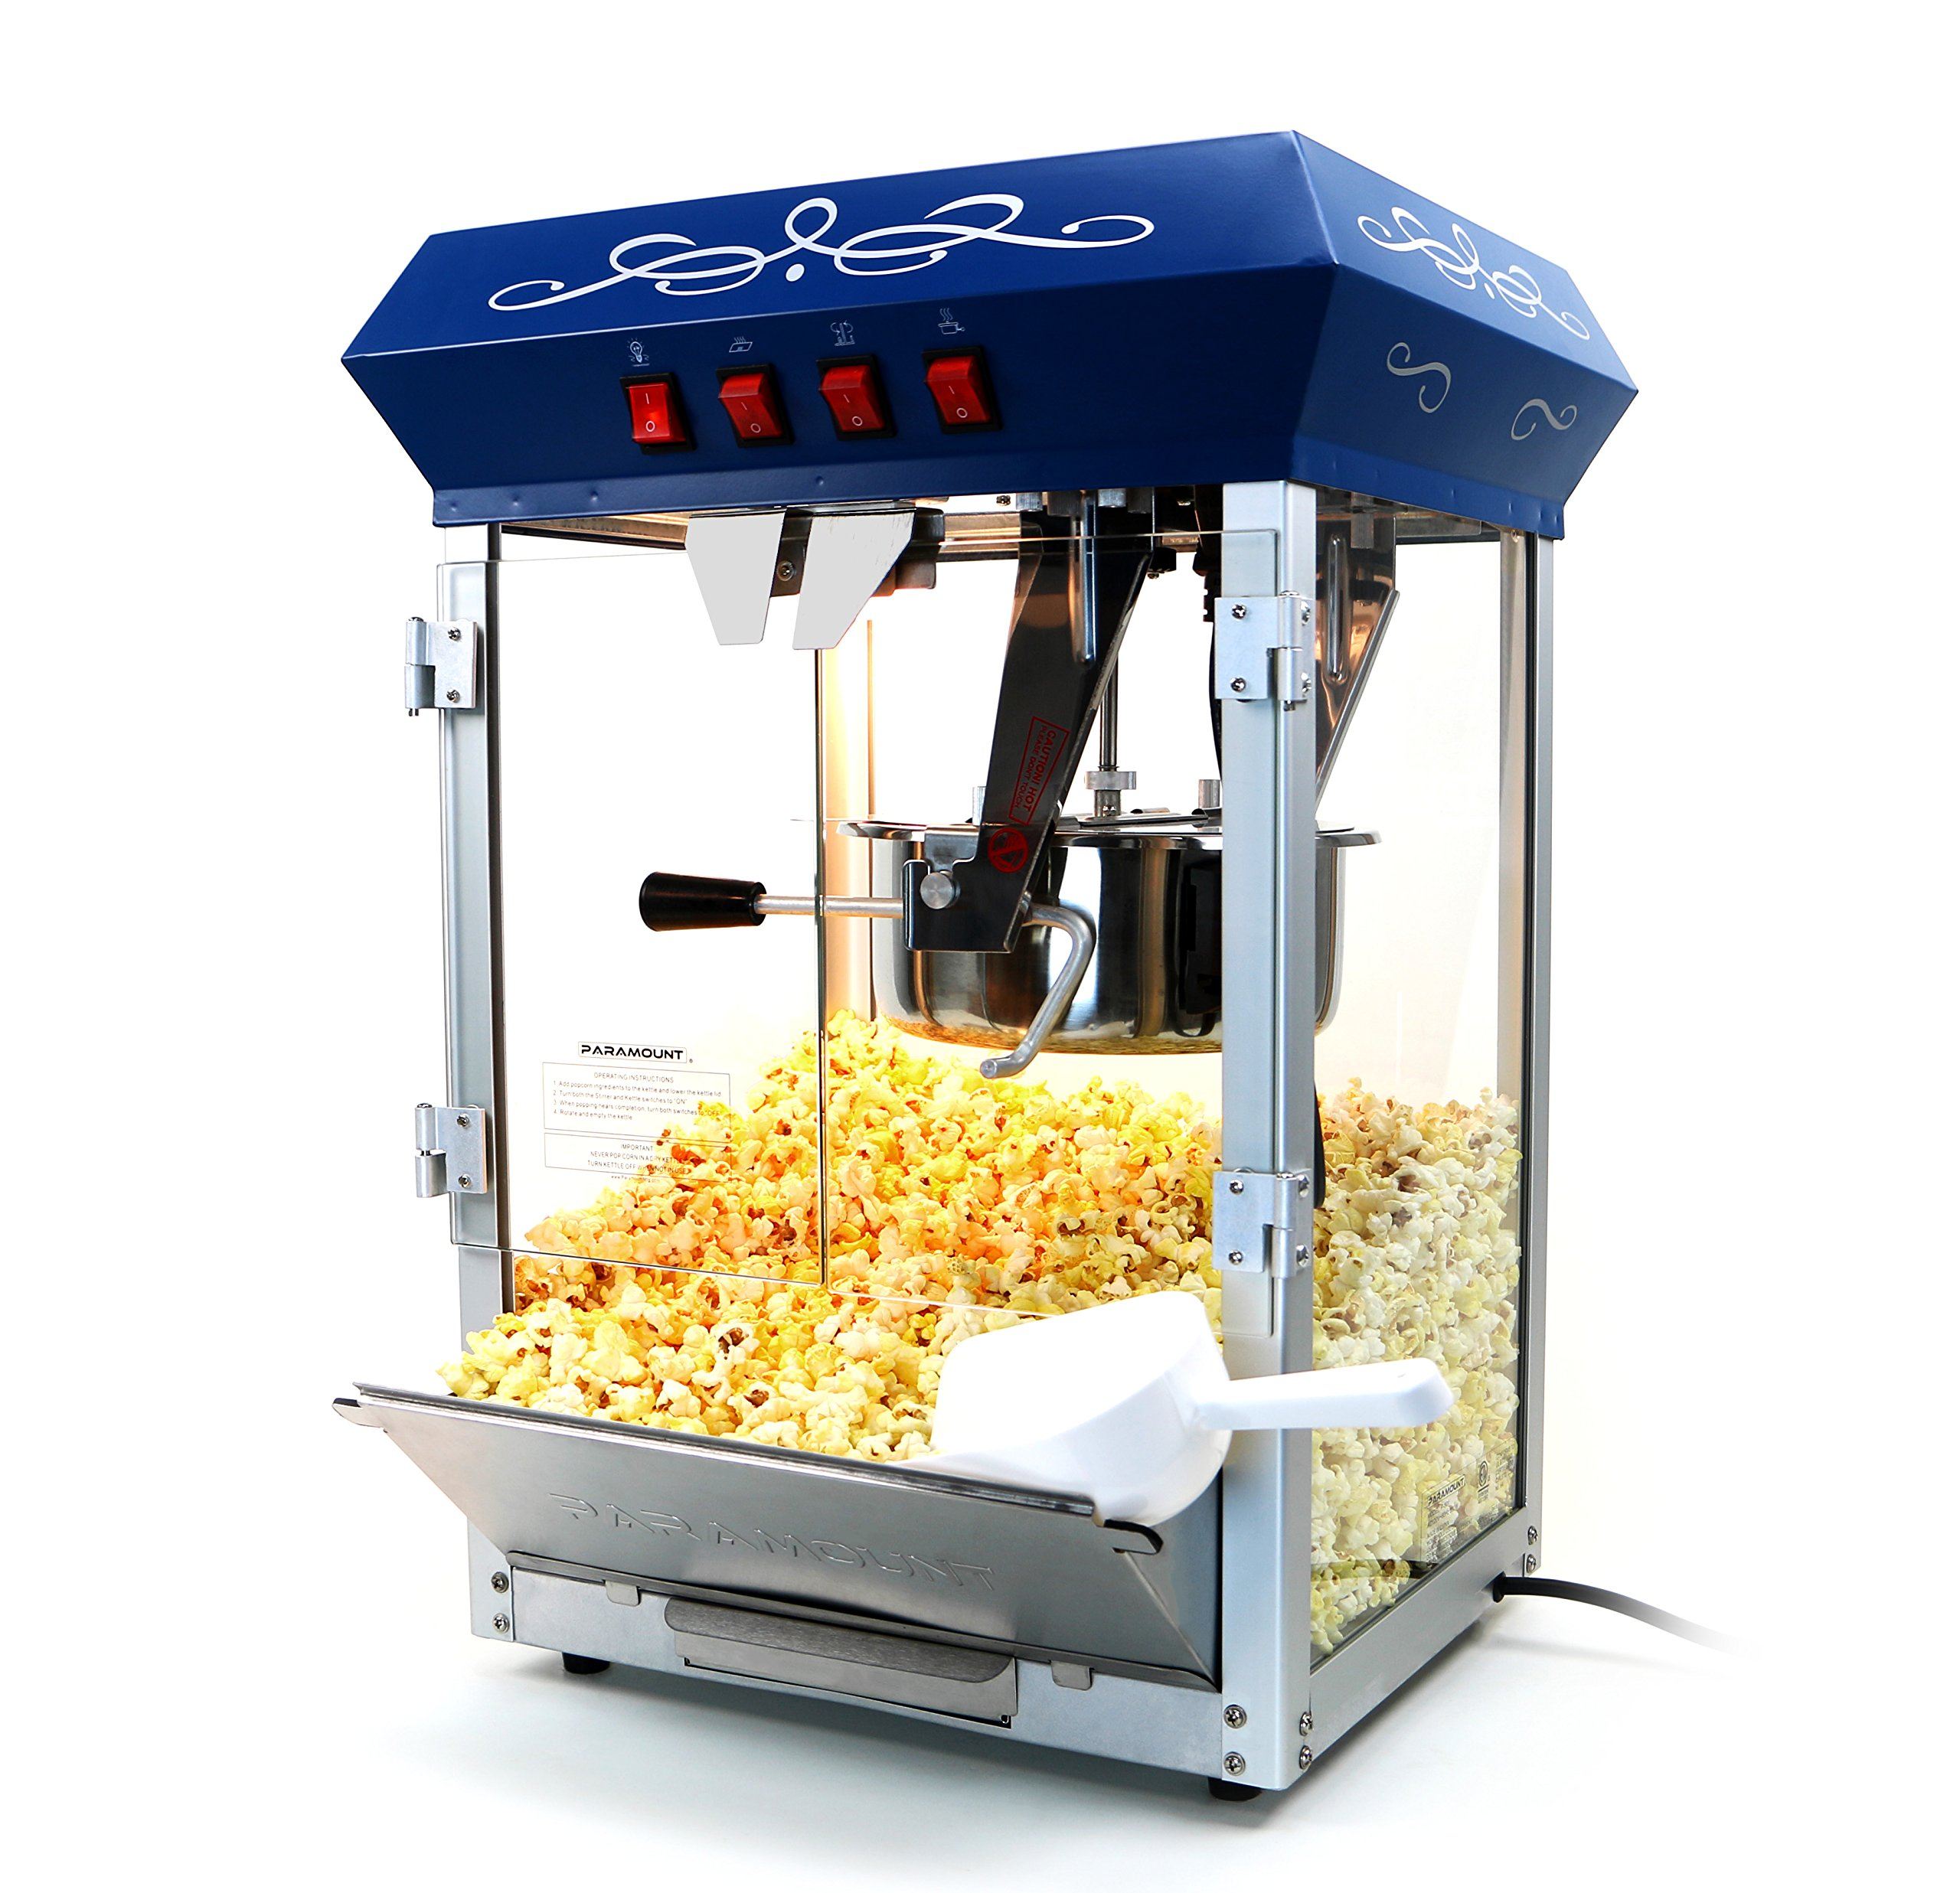 Paramount 8oz Popcorn Maker Machine - New Upgraded Feature-Rich 8 oz Hot Oil Popper [Color: Blue]